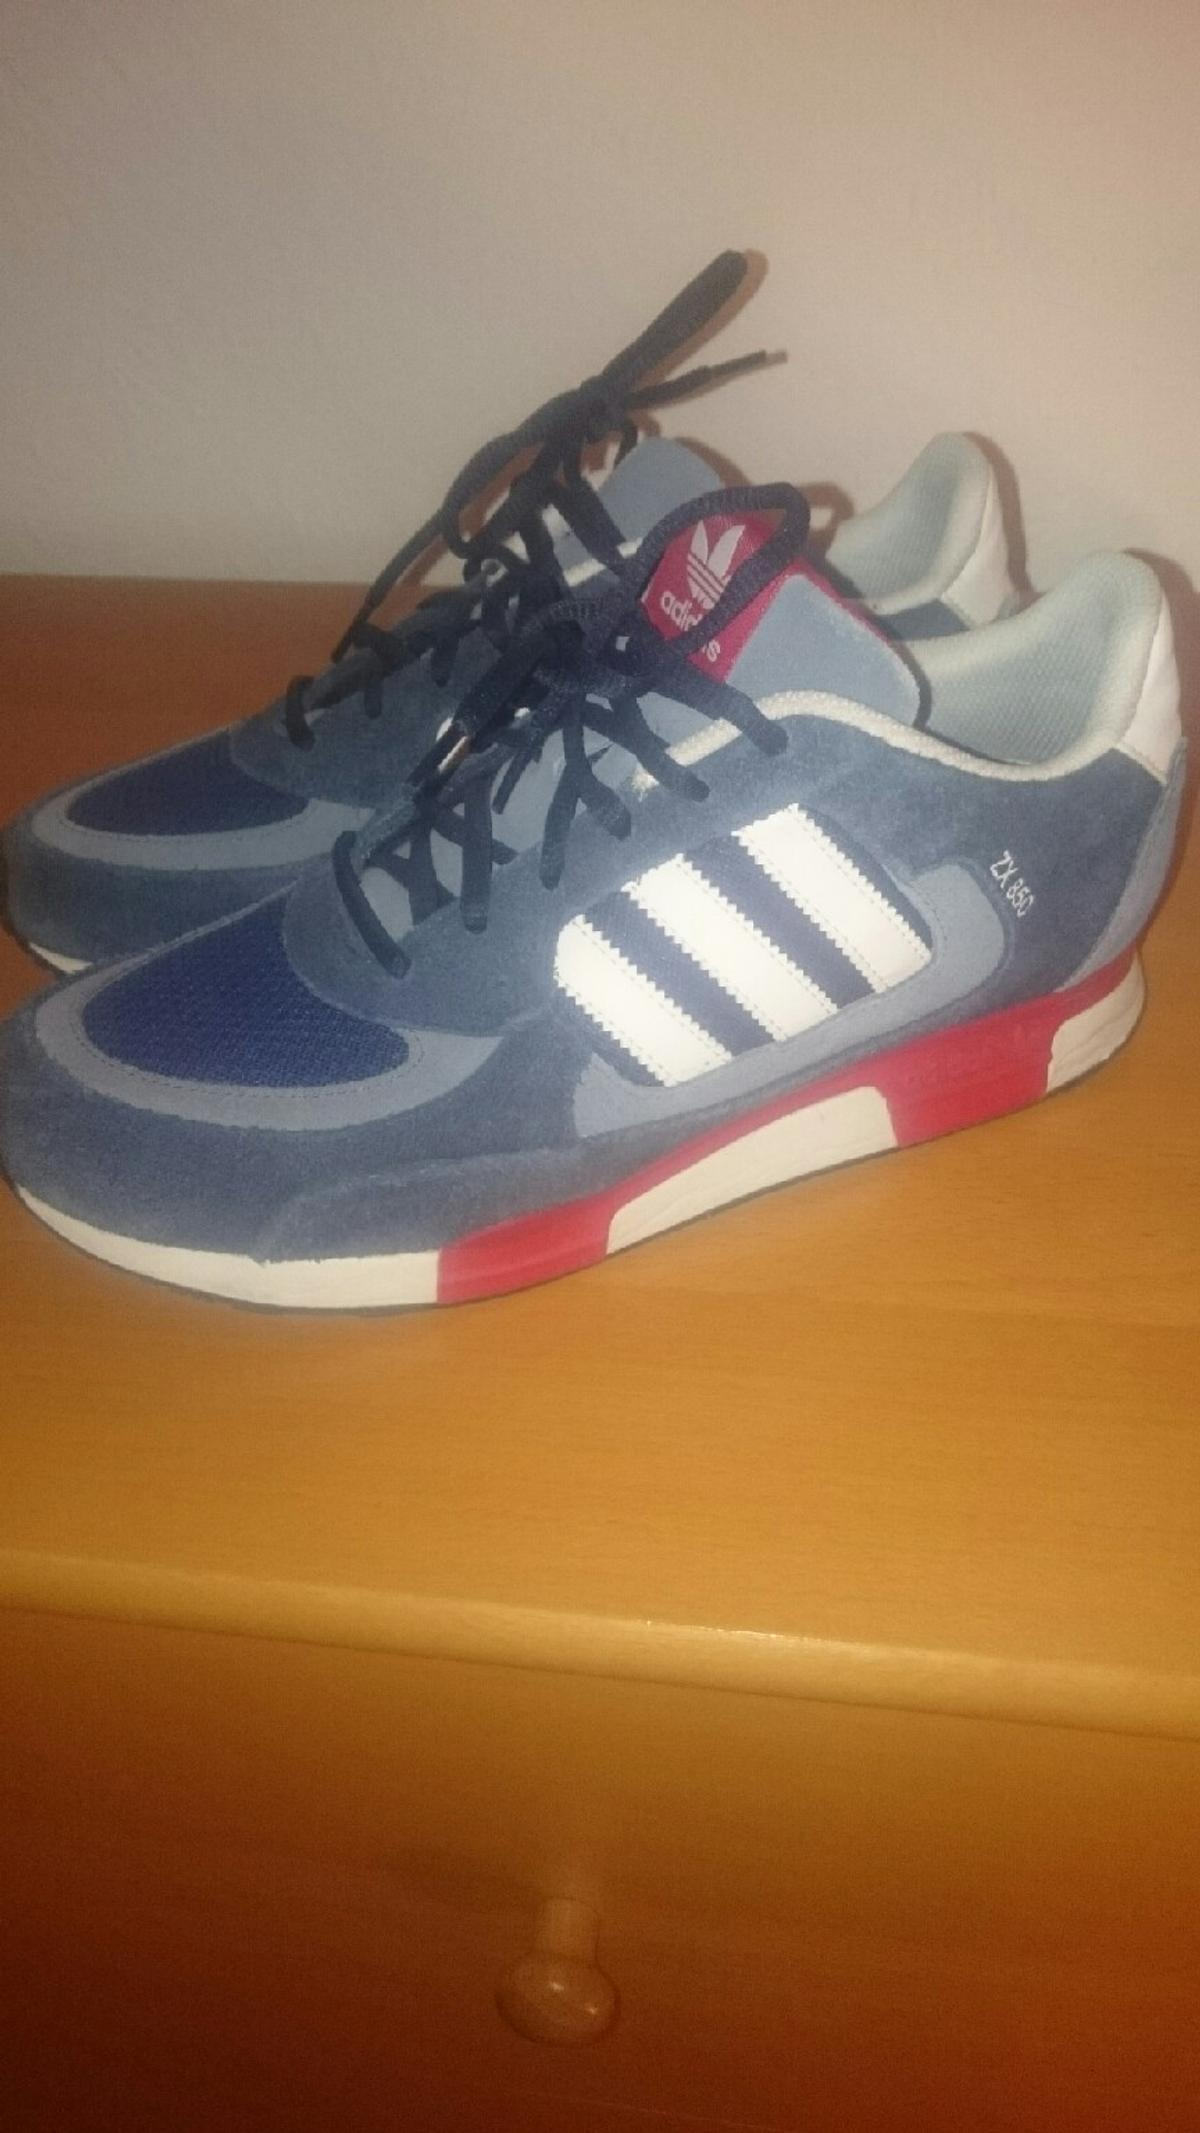 Adidas zx850 in 56068 Koblenz for ?1.11 for sale | Shpock